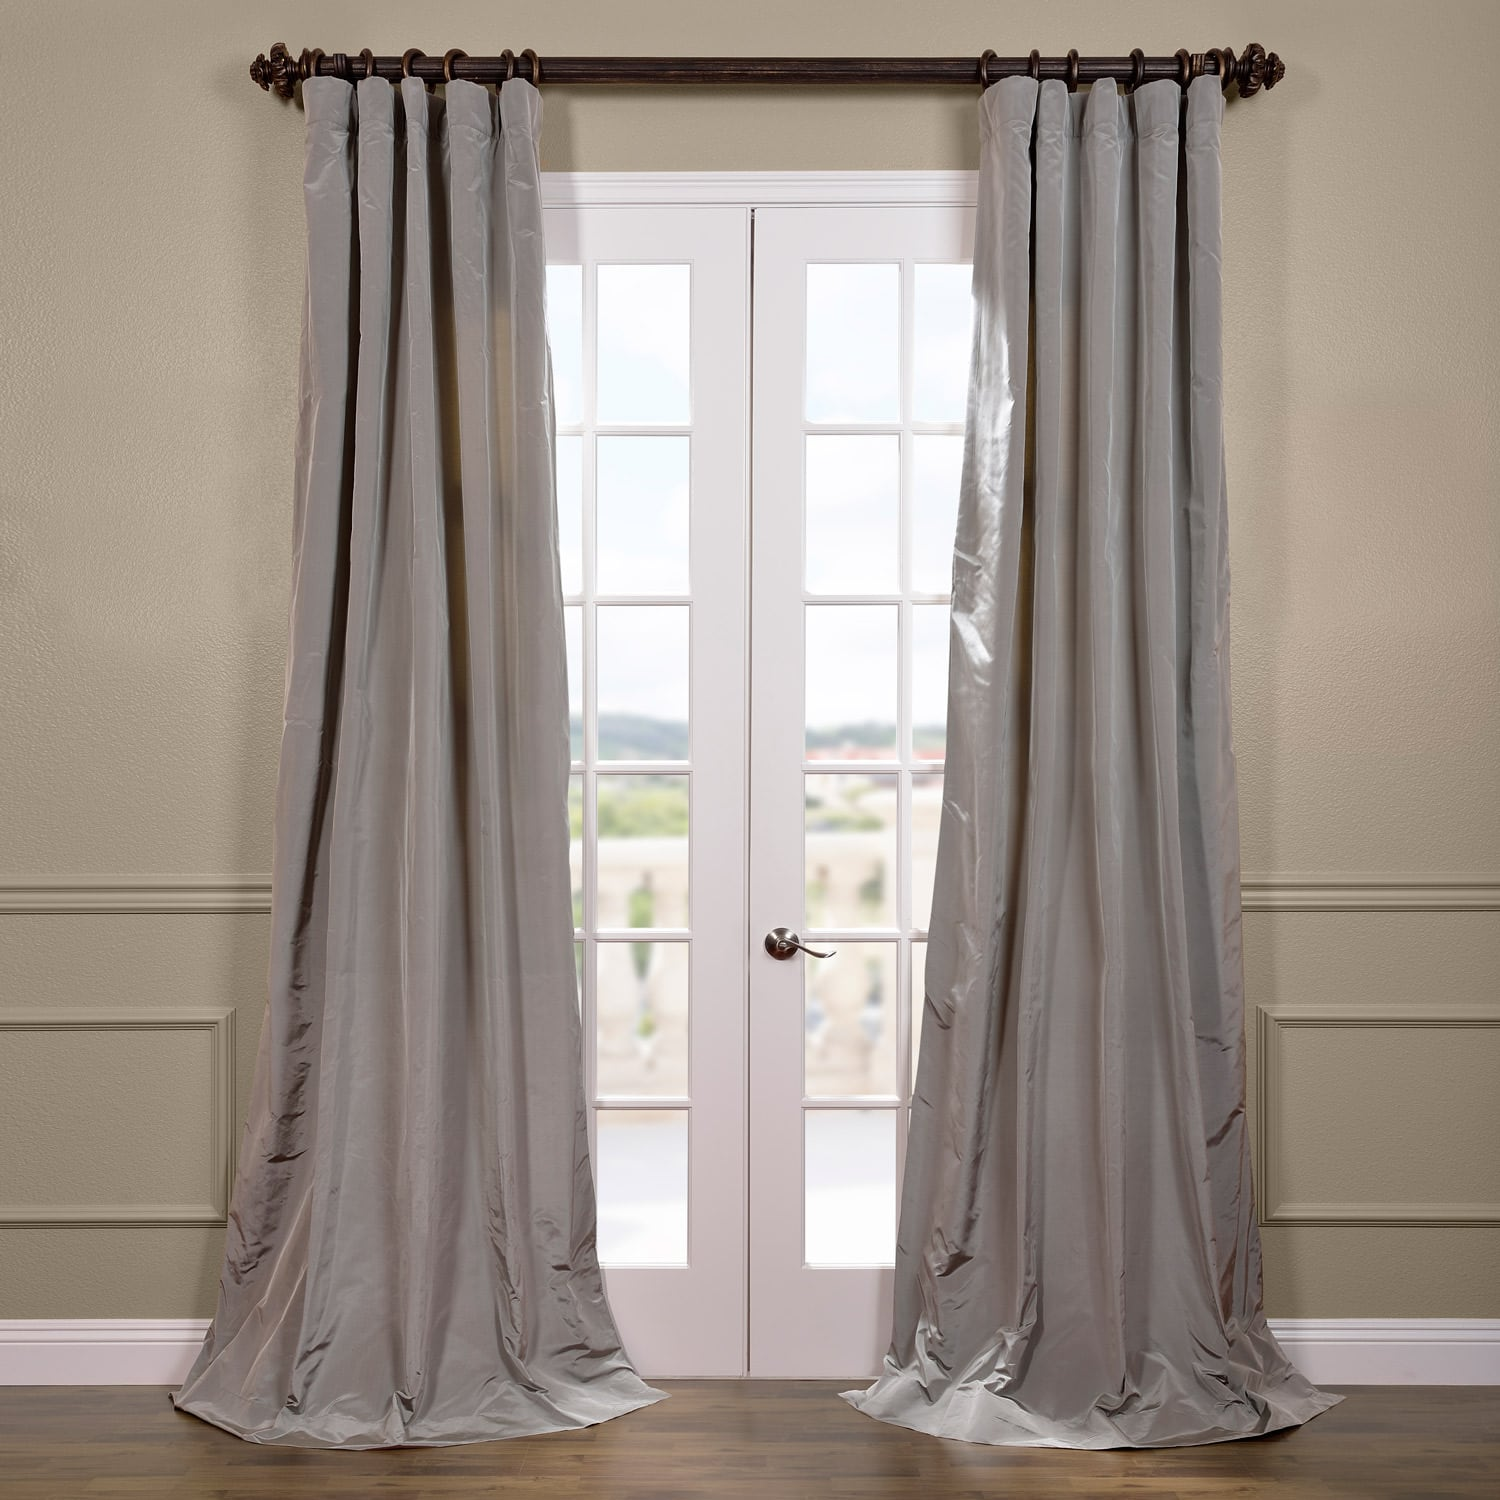 silk drapery the custom and on curtains draperies best ideas drapes online p pinterest buy panels